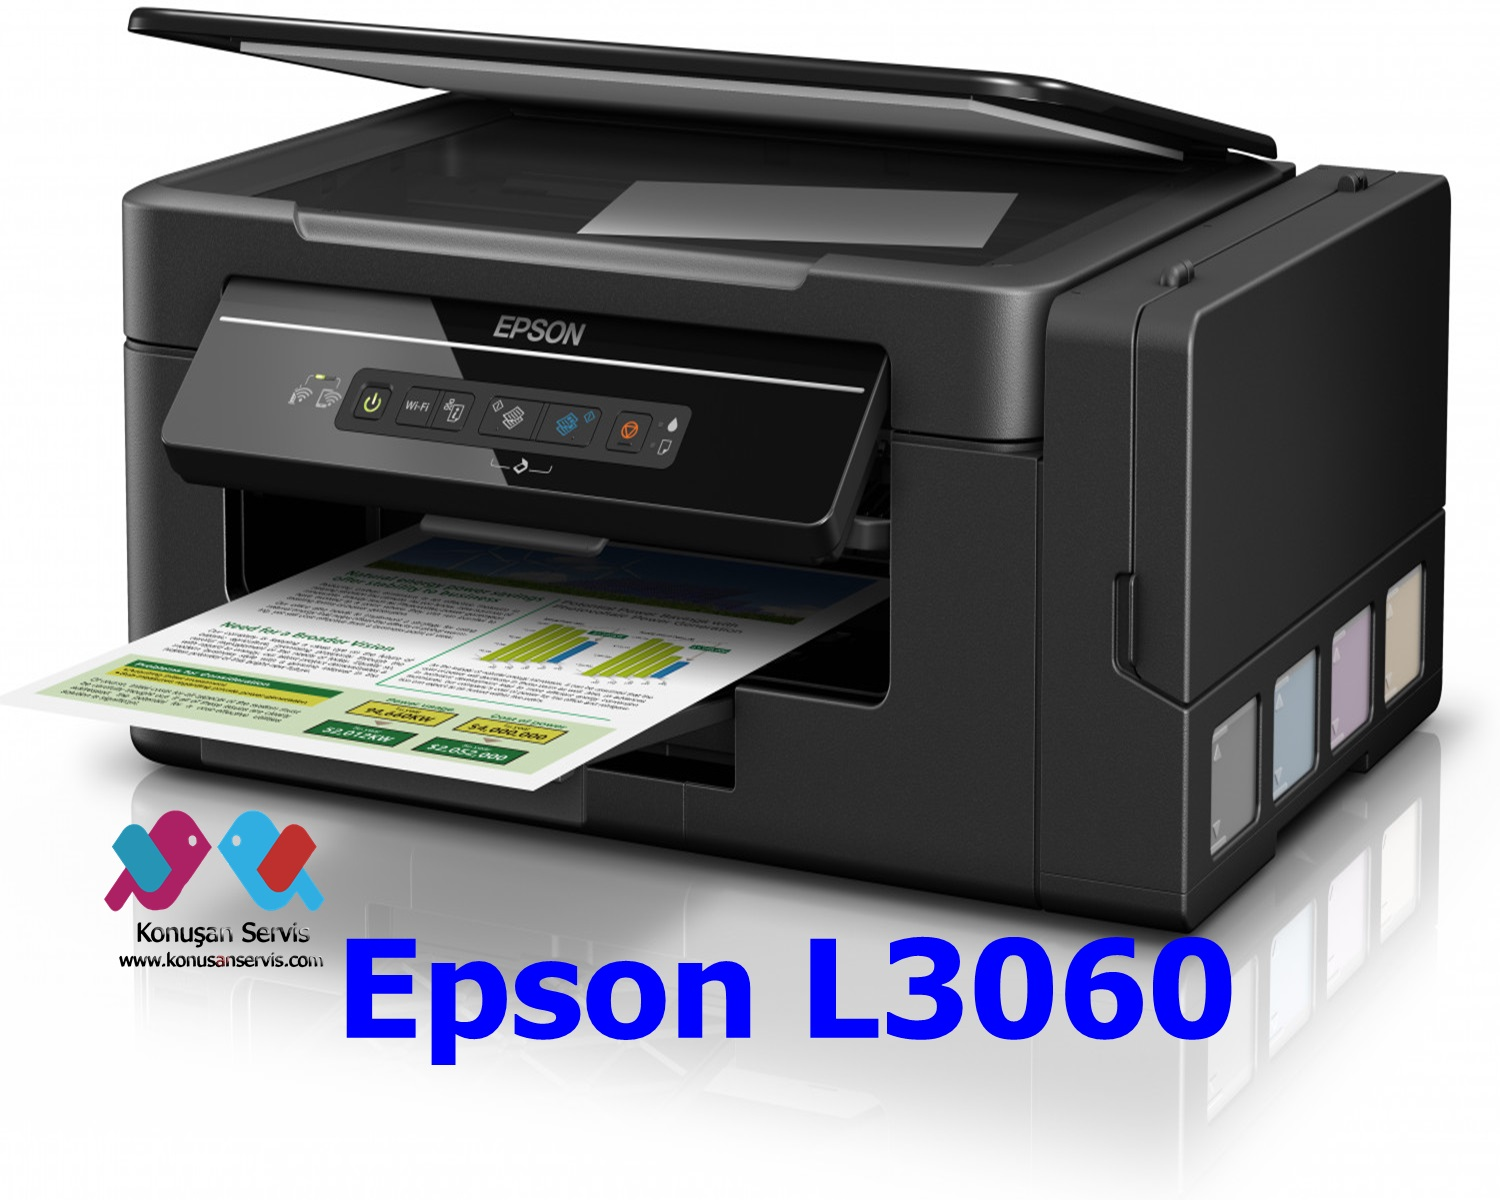 Epson EcoTank ITS L3060 driver Win 7 64 Bit Full indir